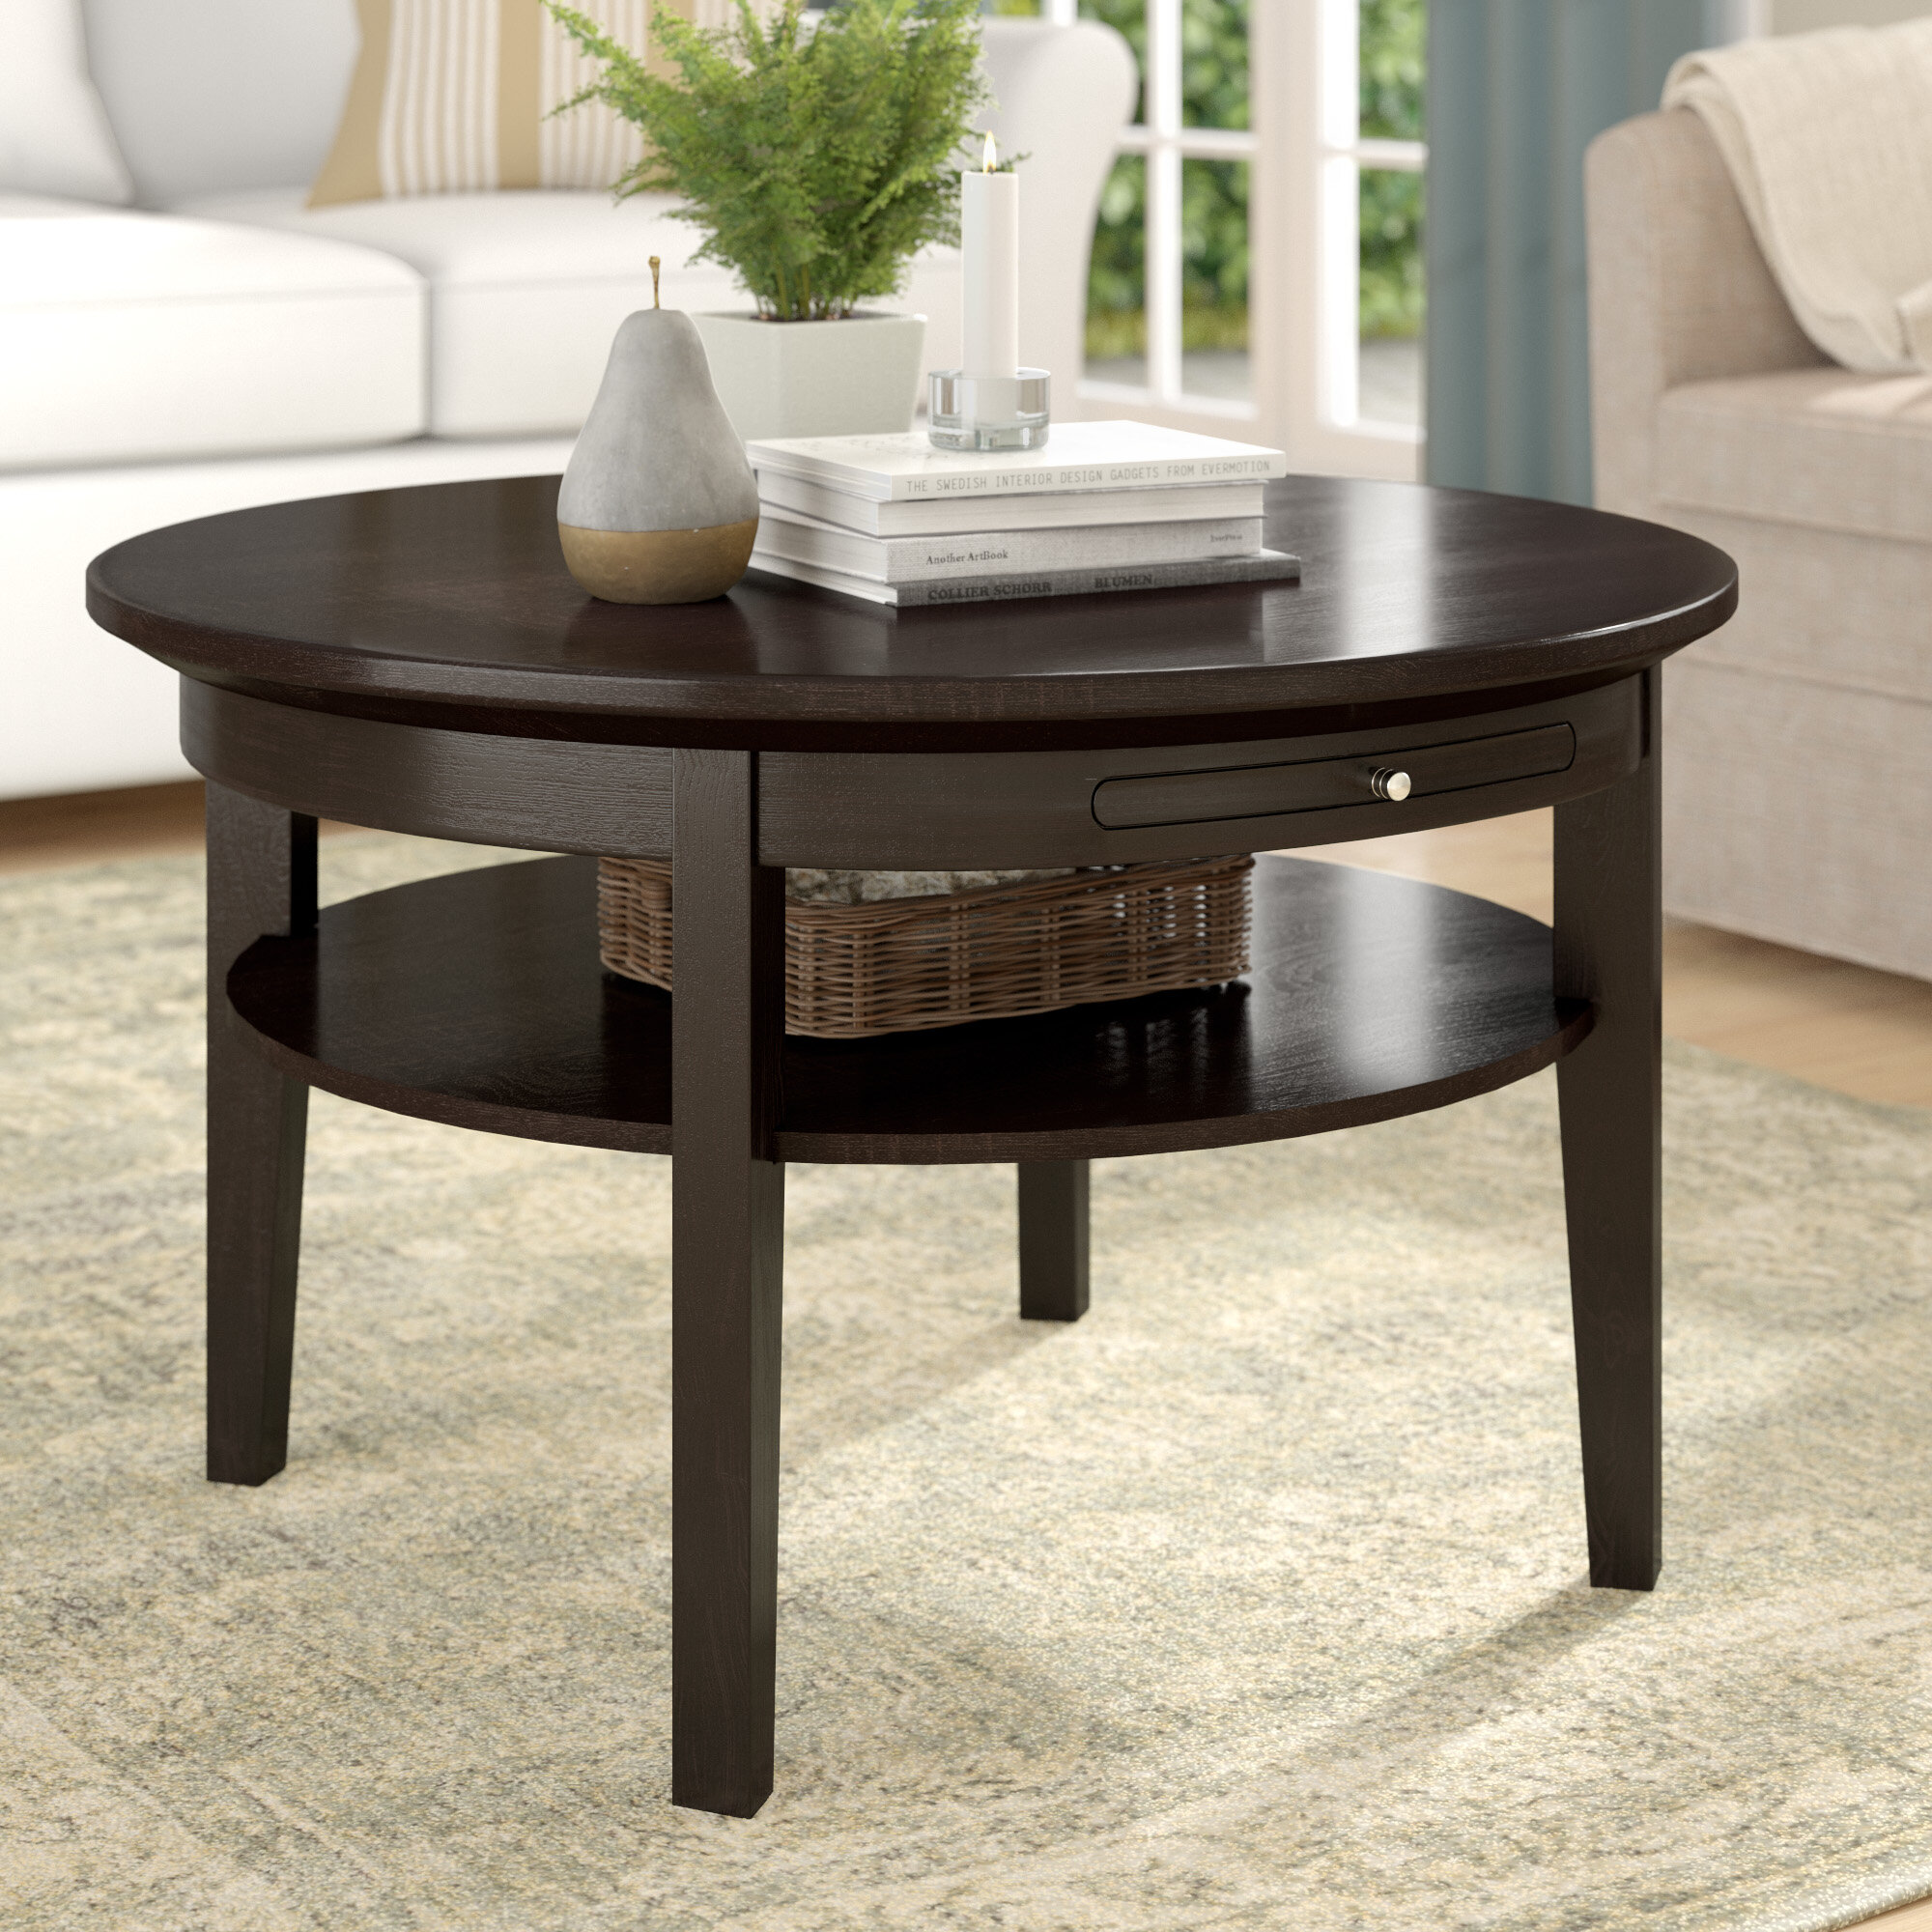 Espresso Wood Coffee Tables Free Shipping Over 35 Wayfair [ 2000 x 2000 Pixel ]